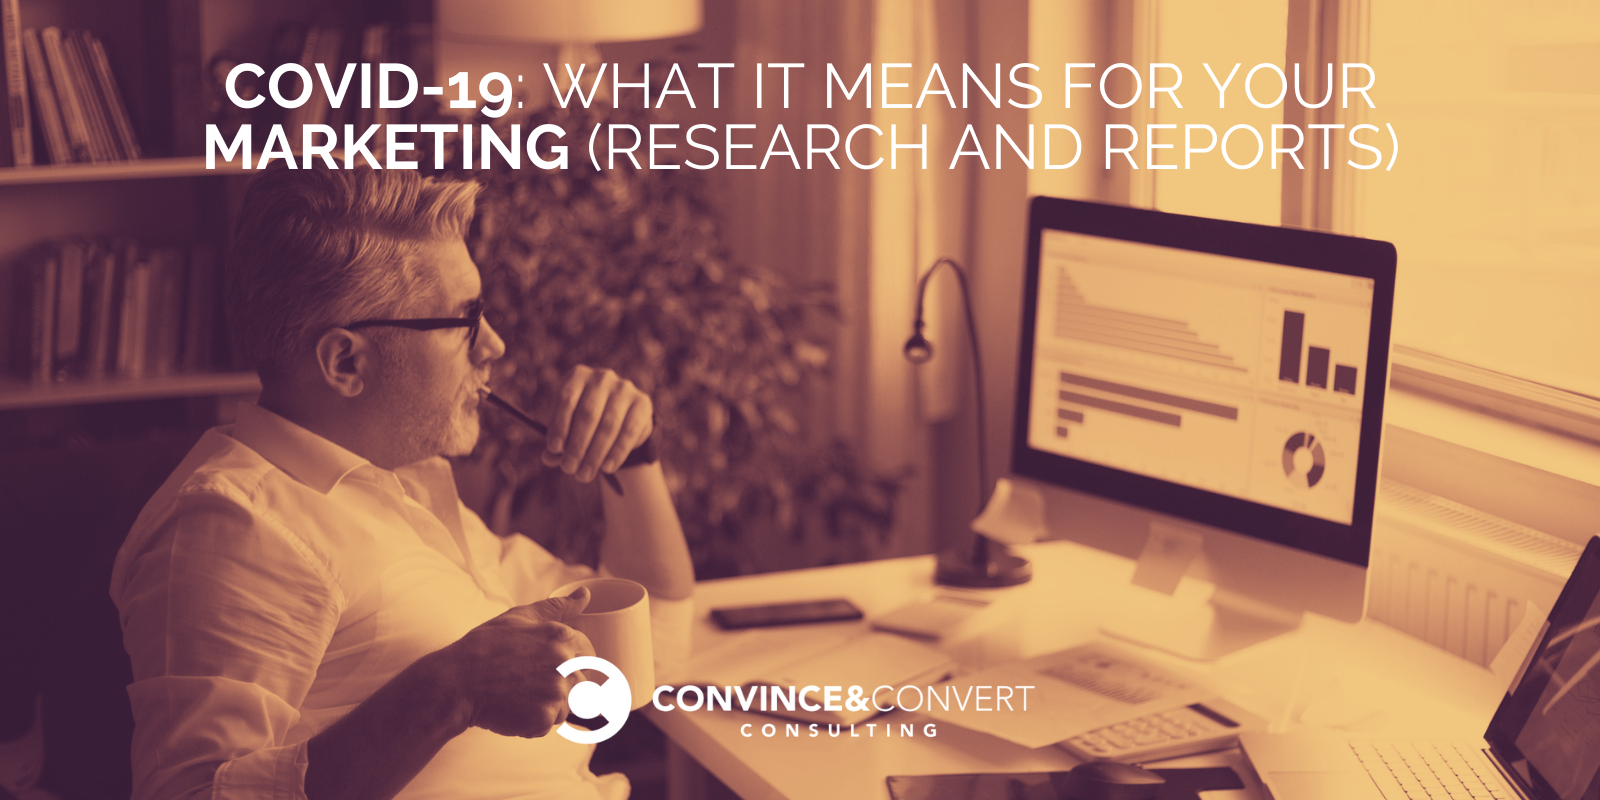 Internet marketing COVID-19: What It Means for Your Marketing (Research and Reports)